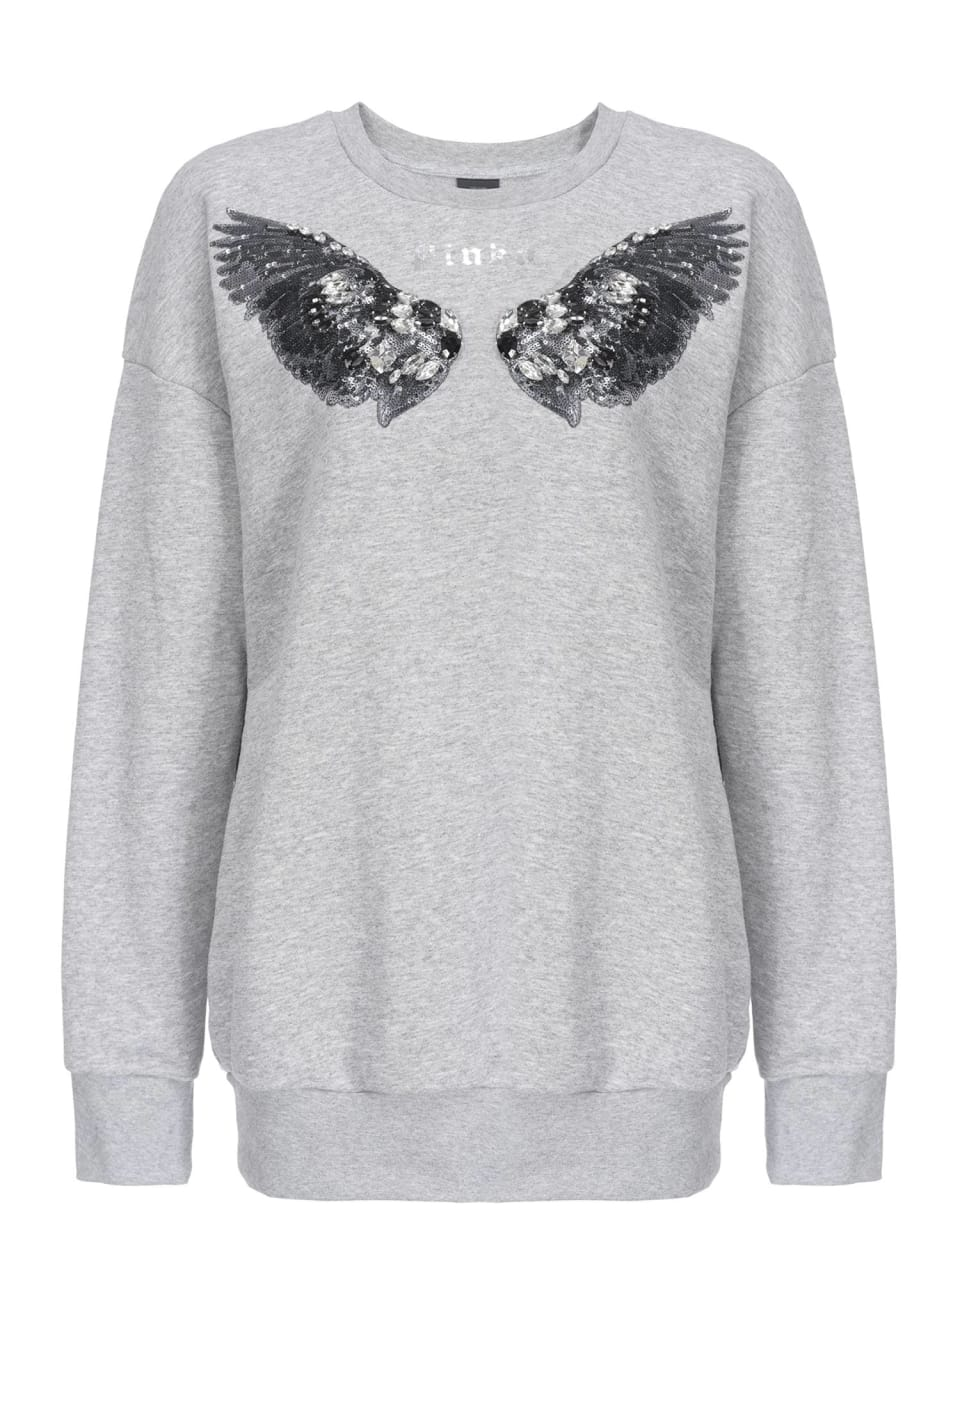 Sweatshirt with wings